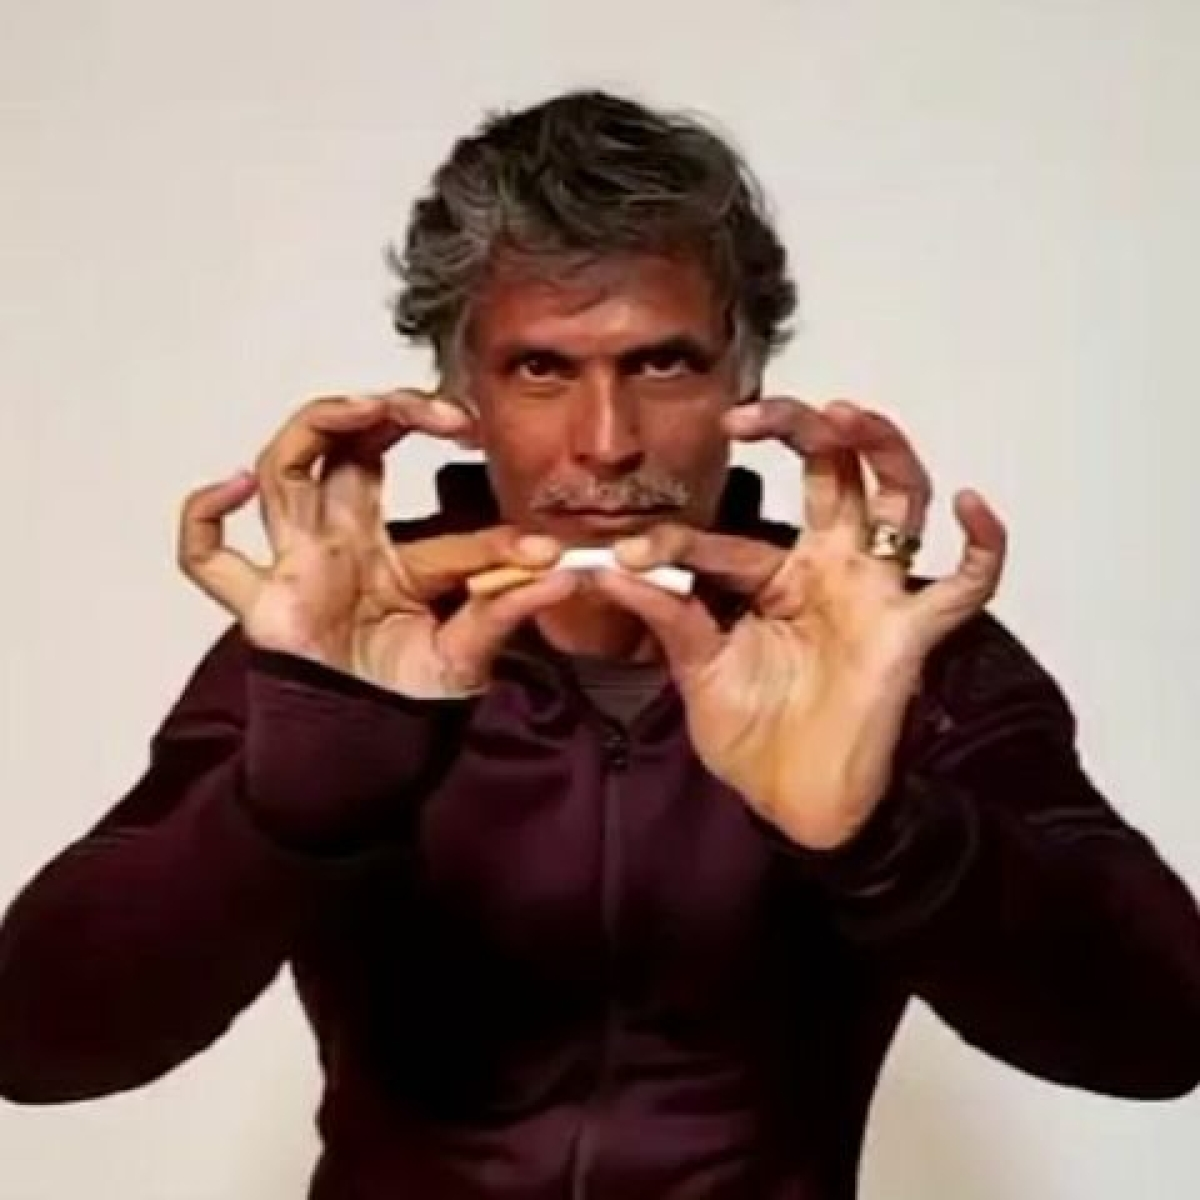 'Got addicted quickly, was soon smoking 20-30 cigarettes a day': Milind Soman on the 'stupidest thing' he has ever done